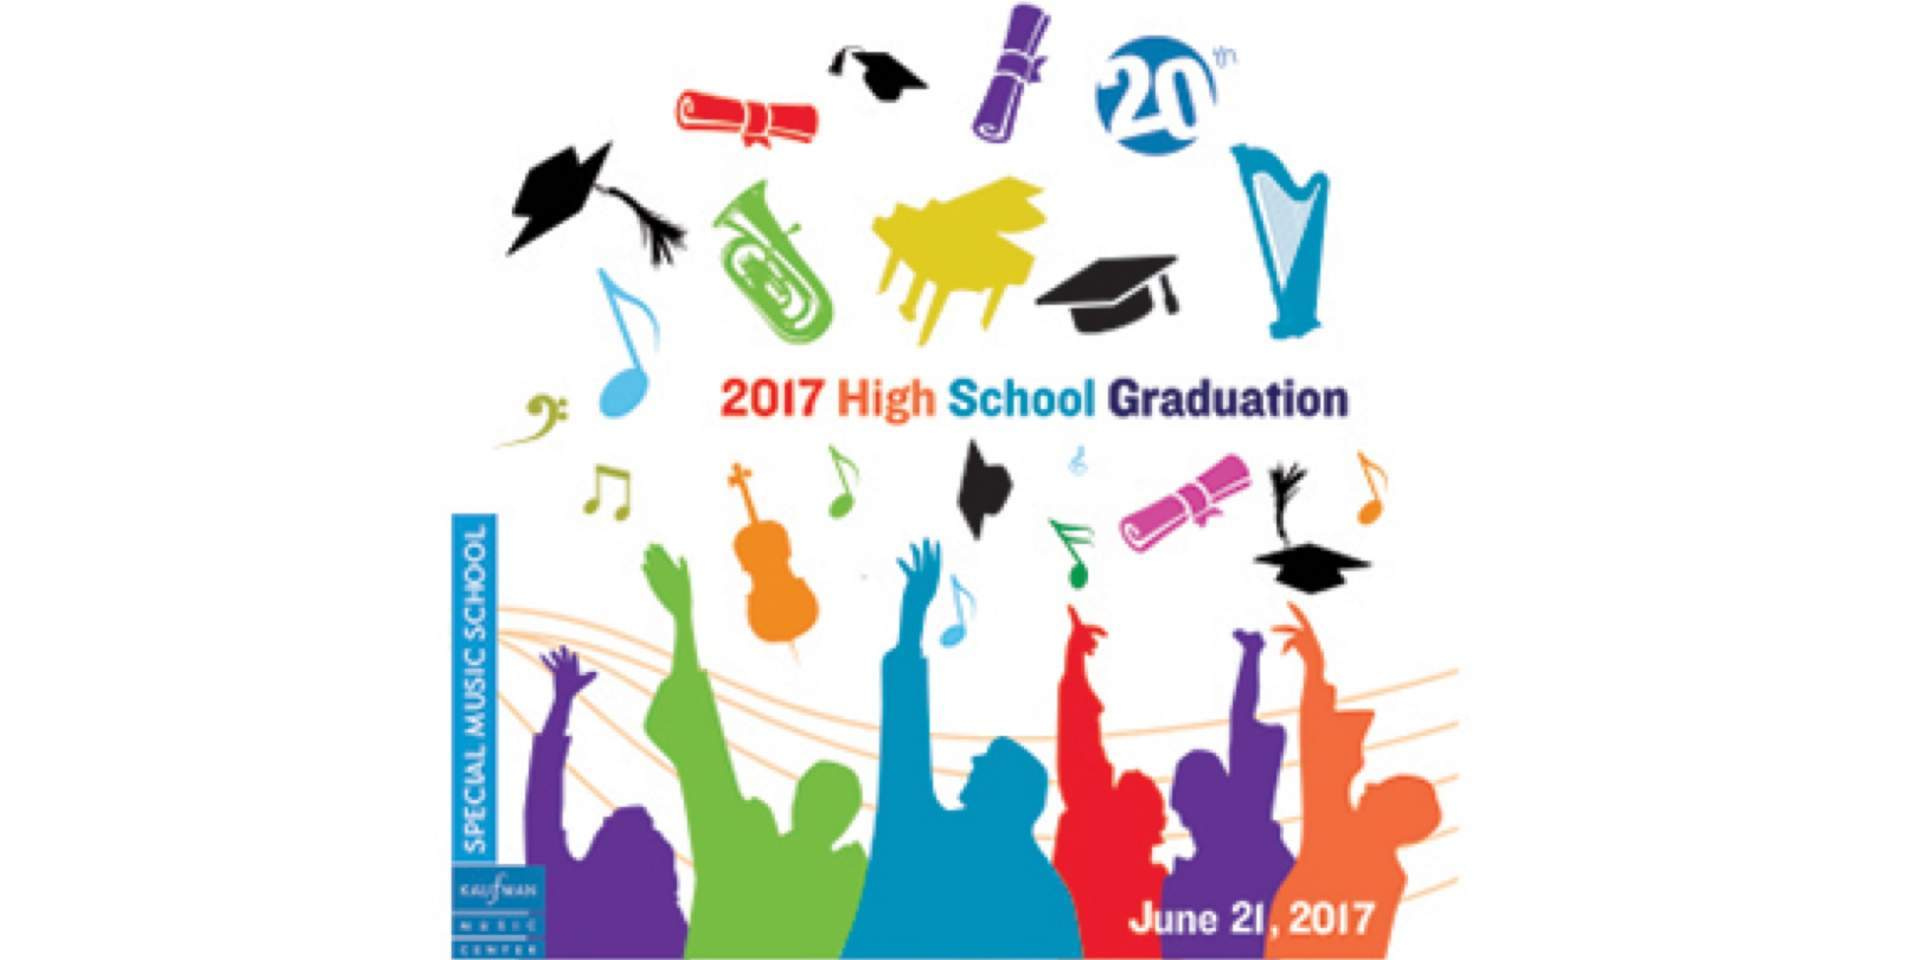 <p>Congratulations to SMS High School's Class of 2017!</p>